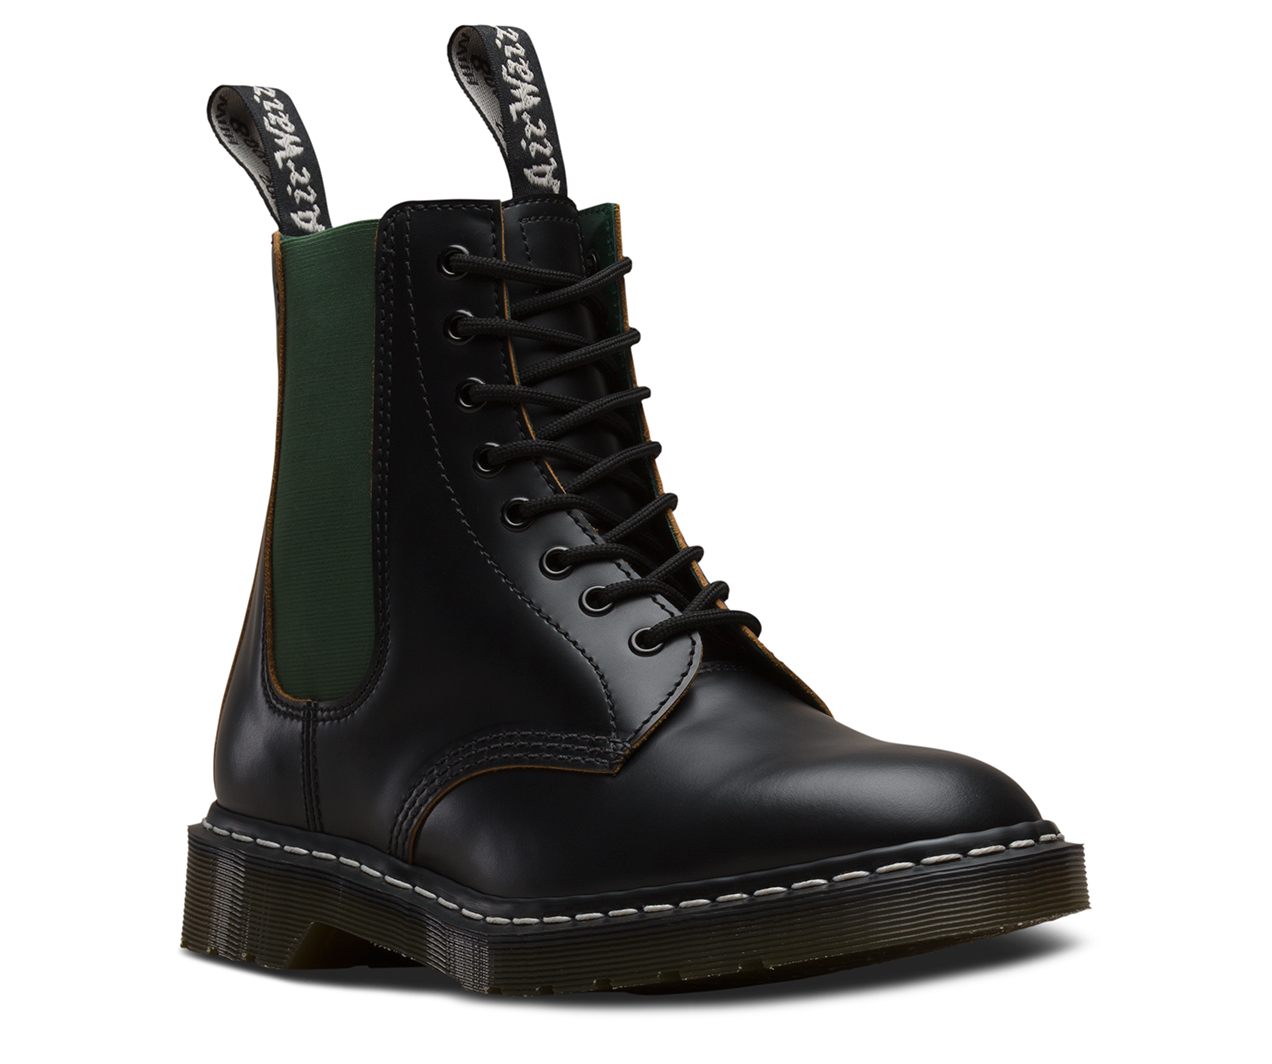 The Dr Martens classic 1460 Boot